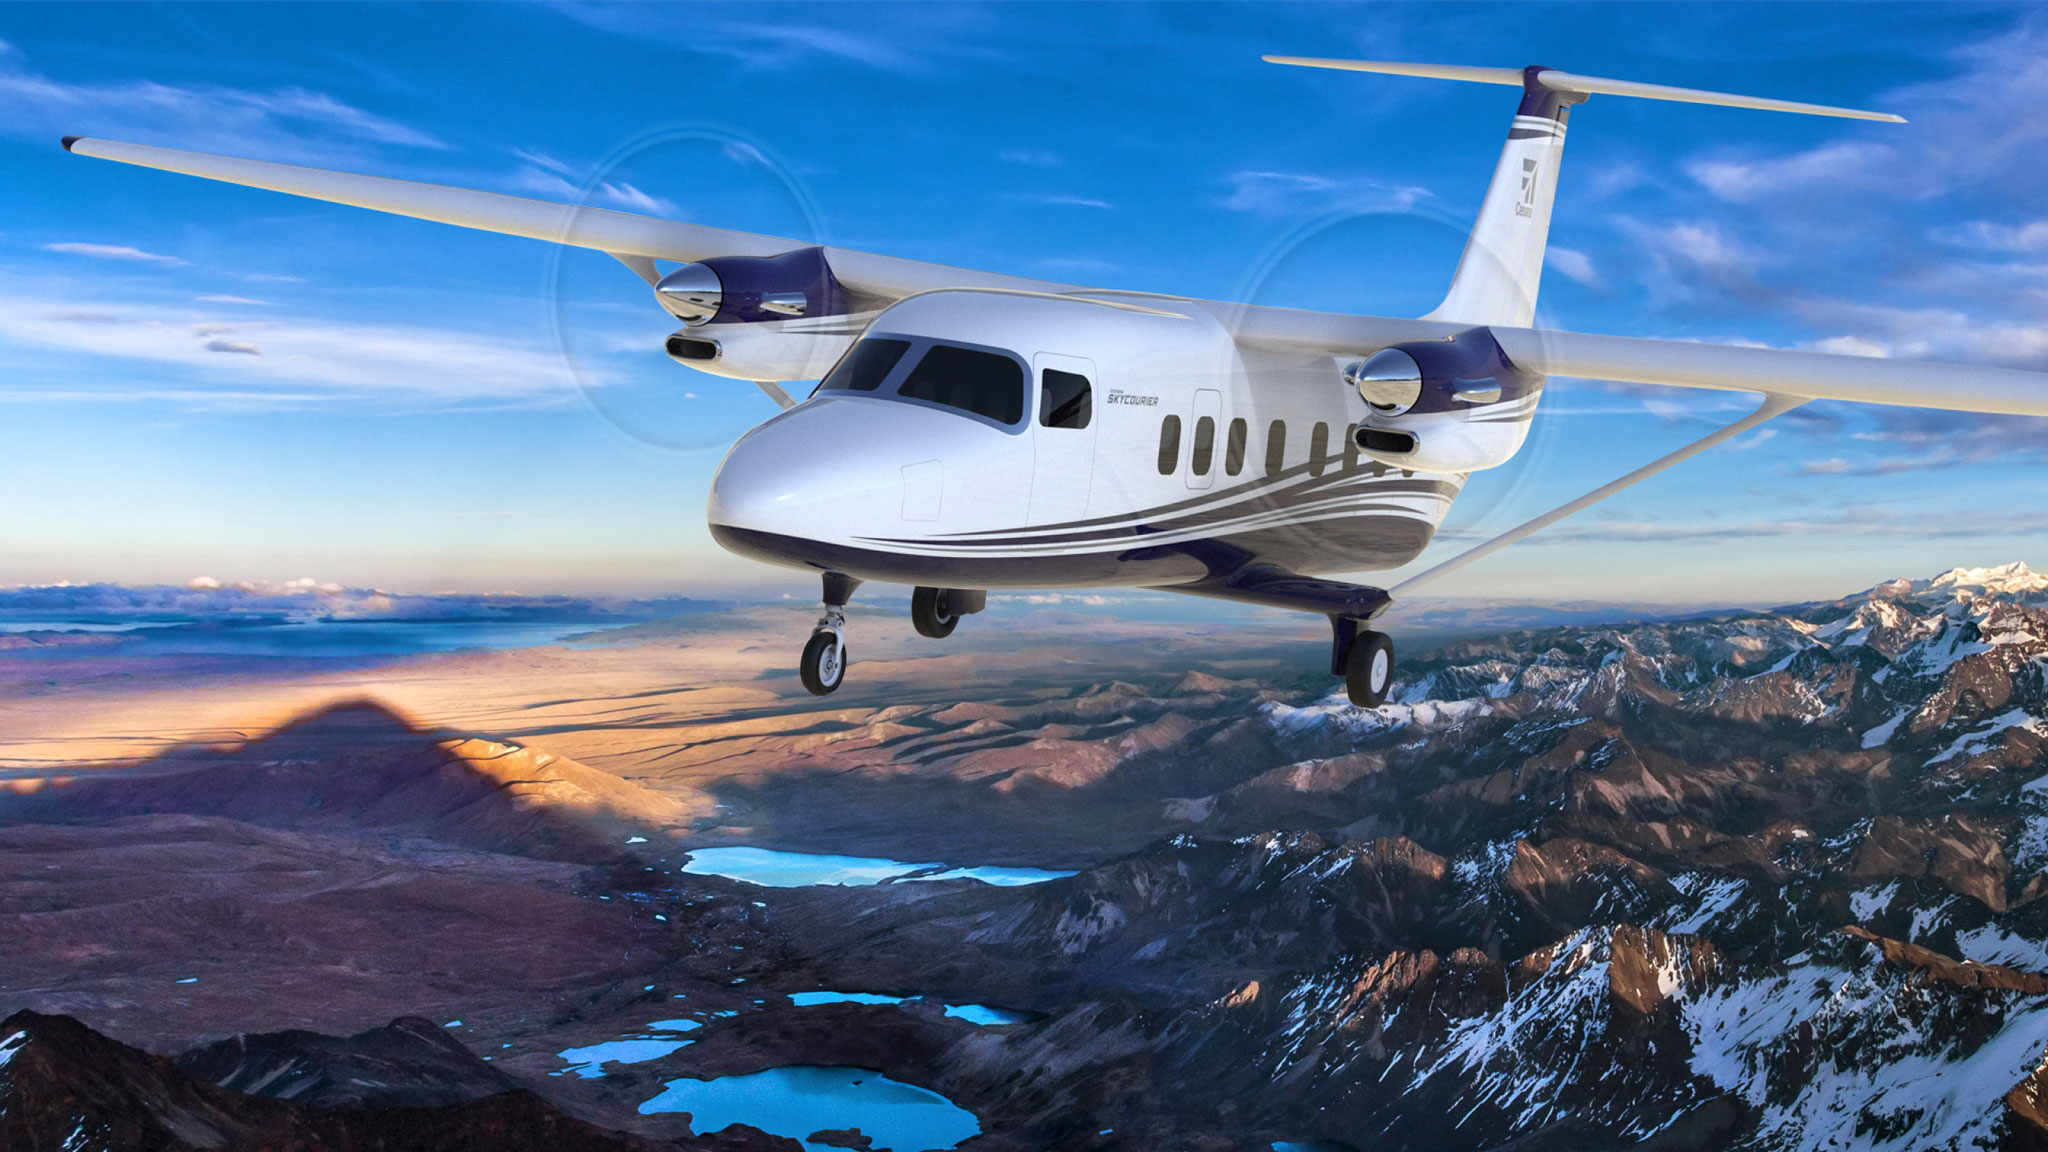 Cessna Plane Textron Launches Cessna Skycourier With 100 Plane Deal Business